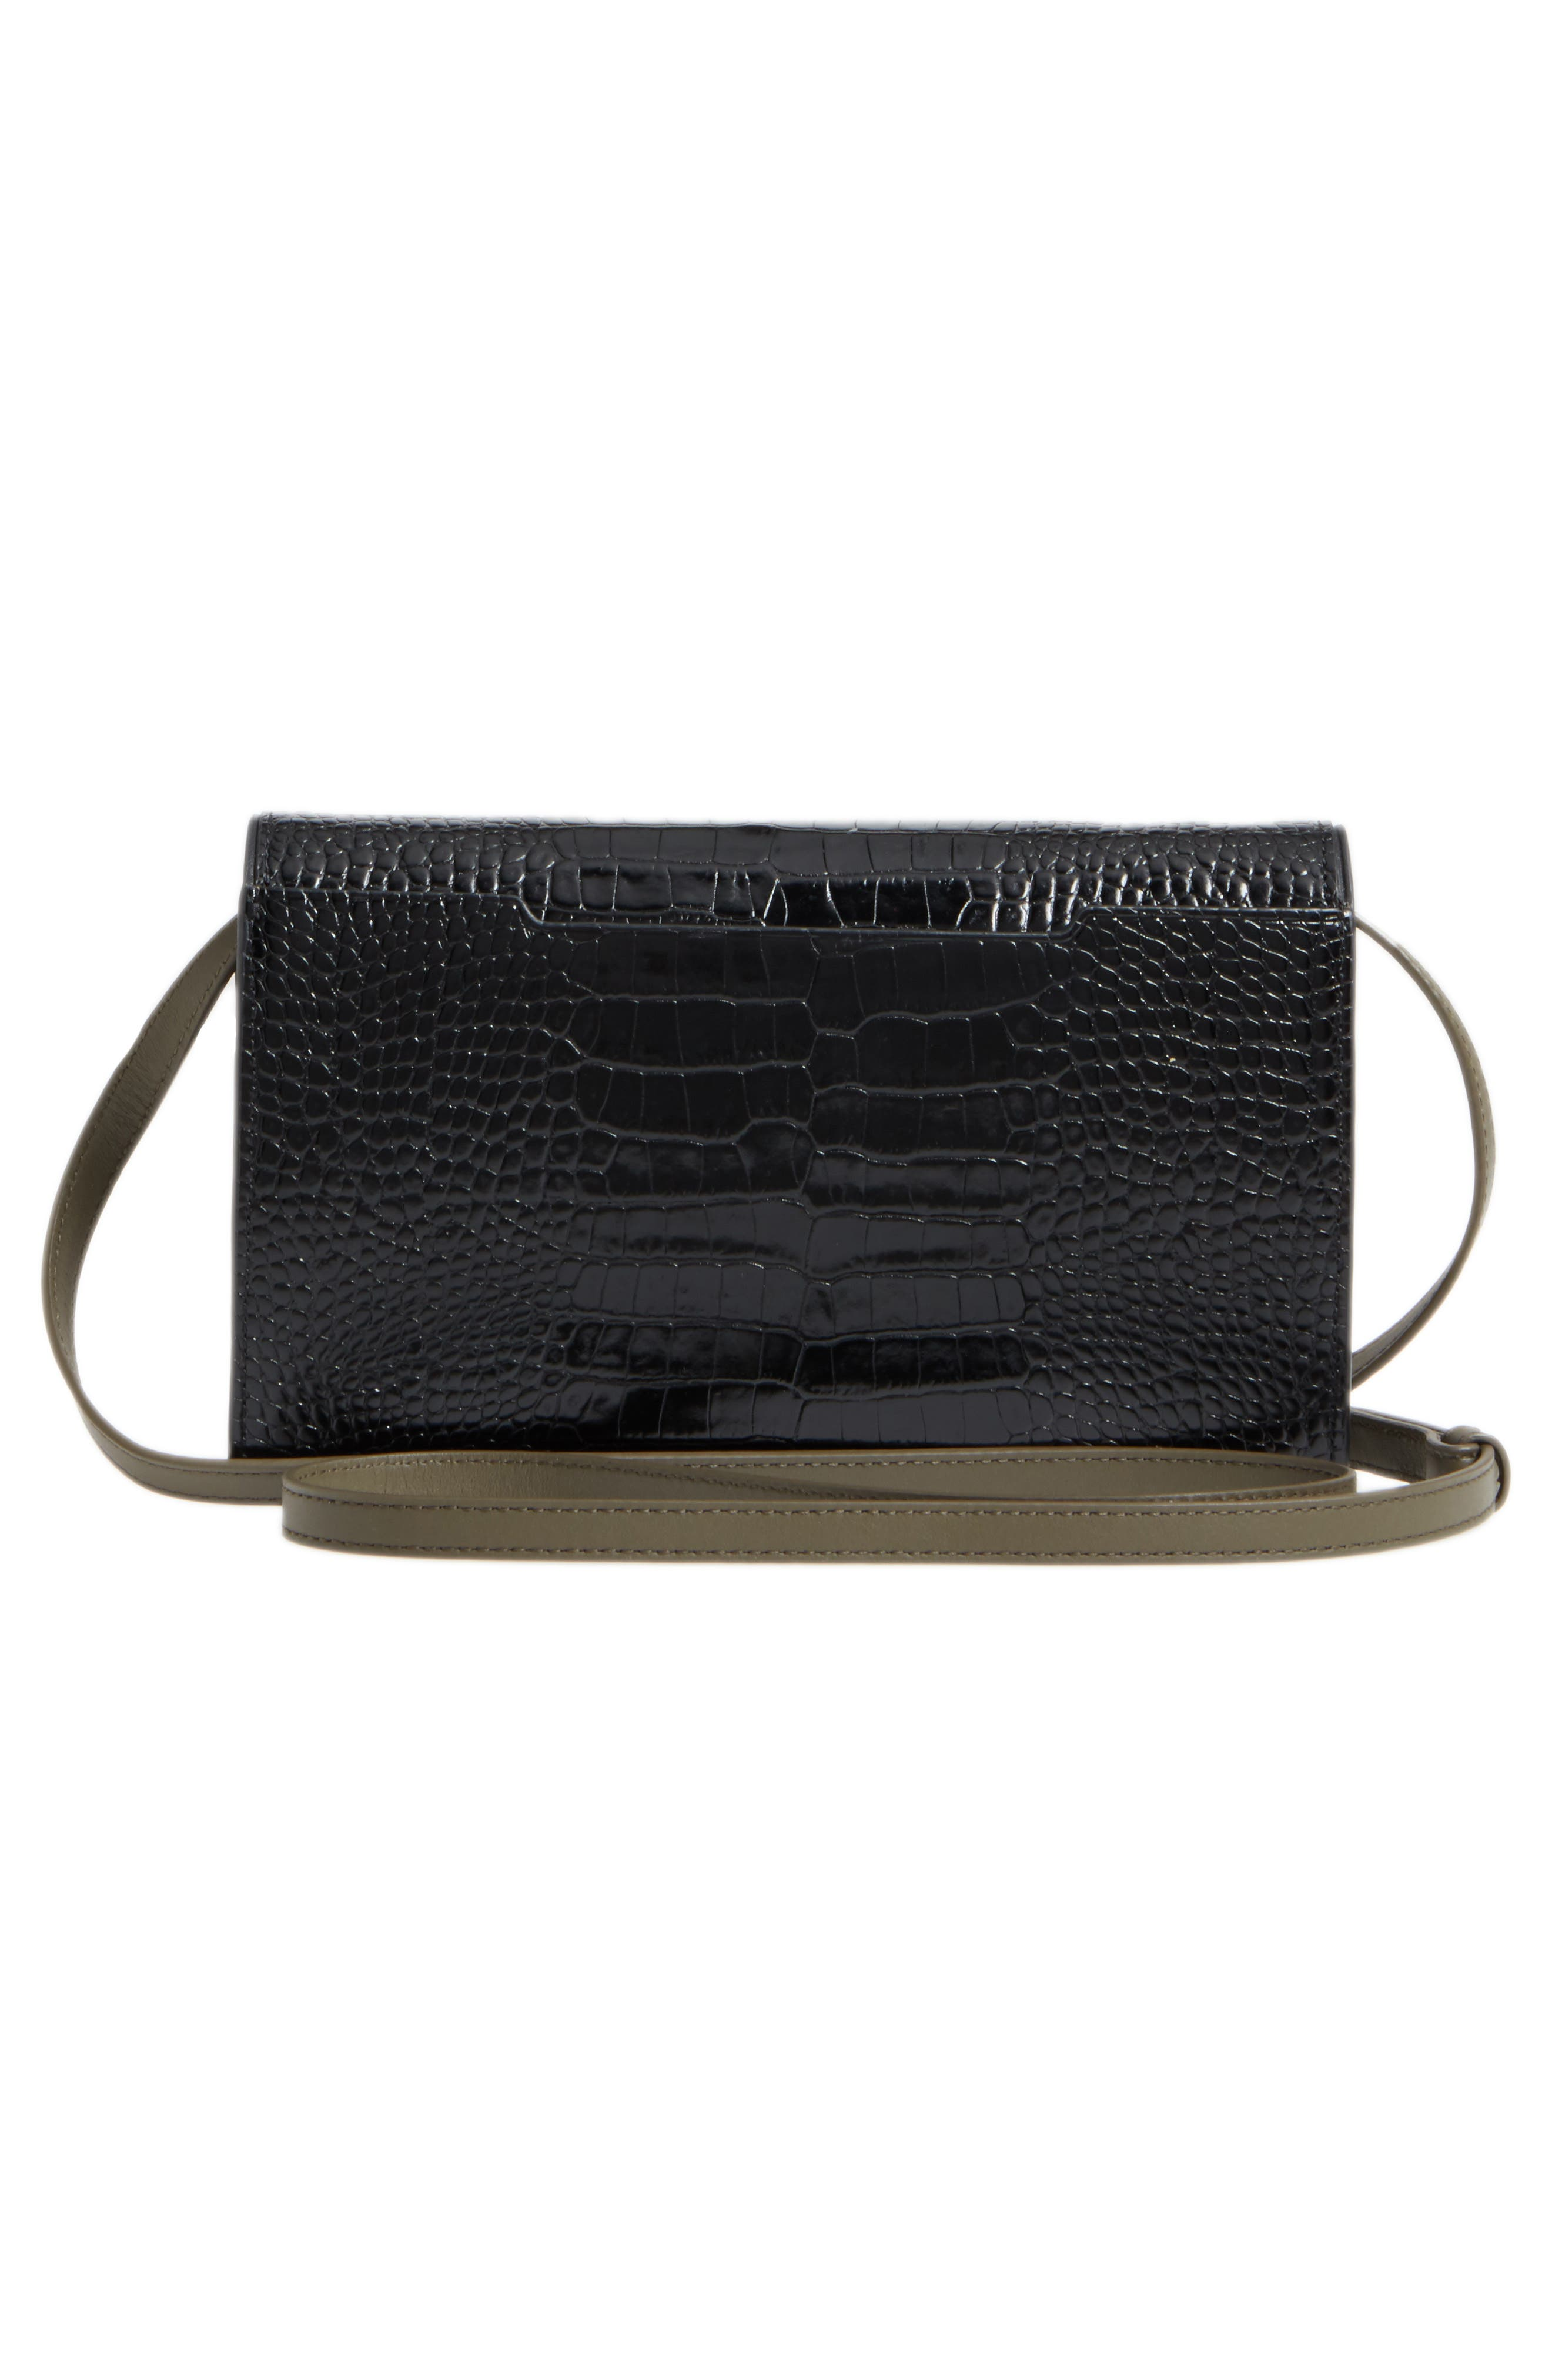 Croc-Embossed Leather Crossbody Wallet,                             Alternate thumbnail 3, color,                             001